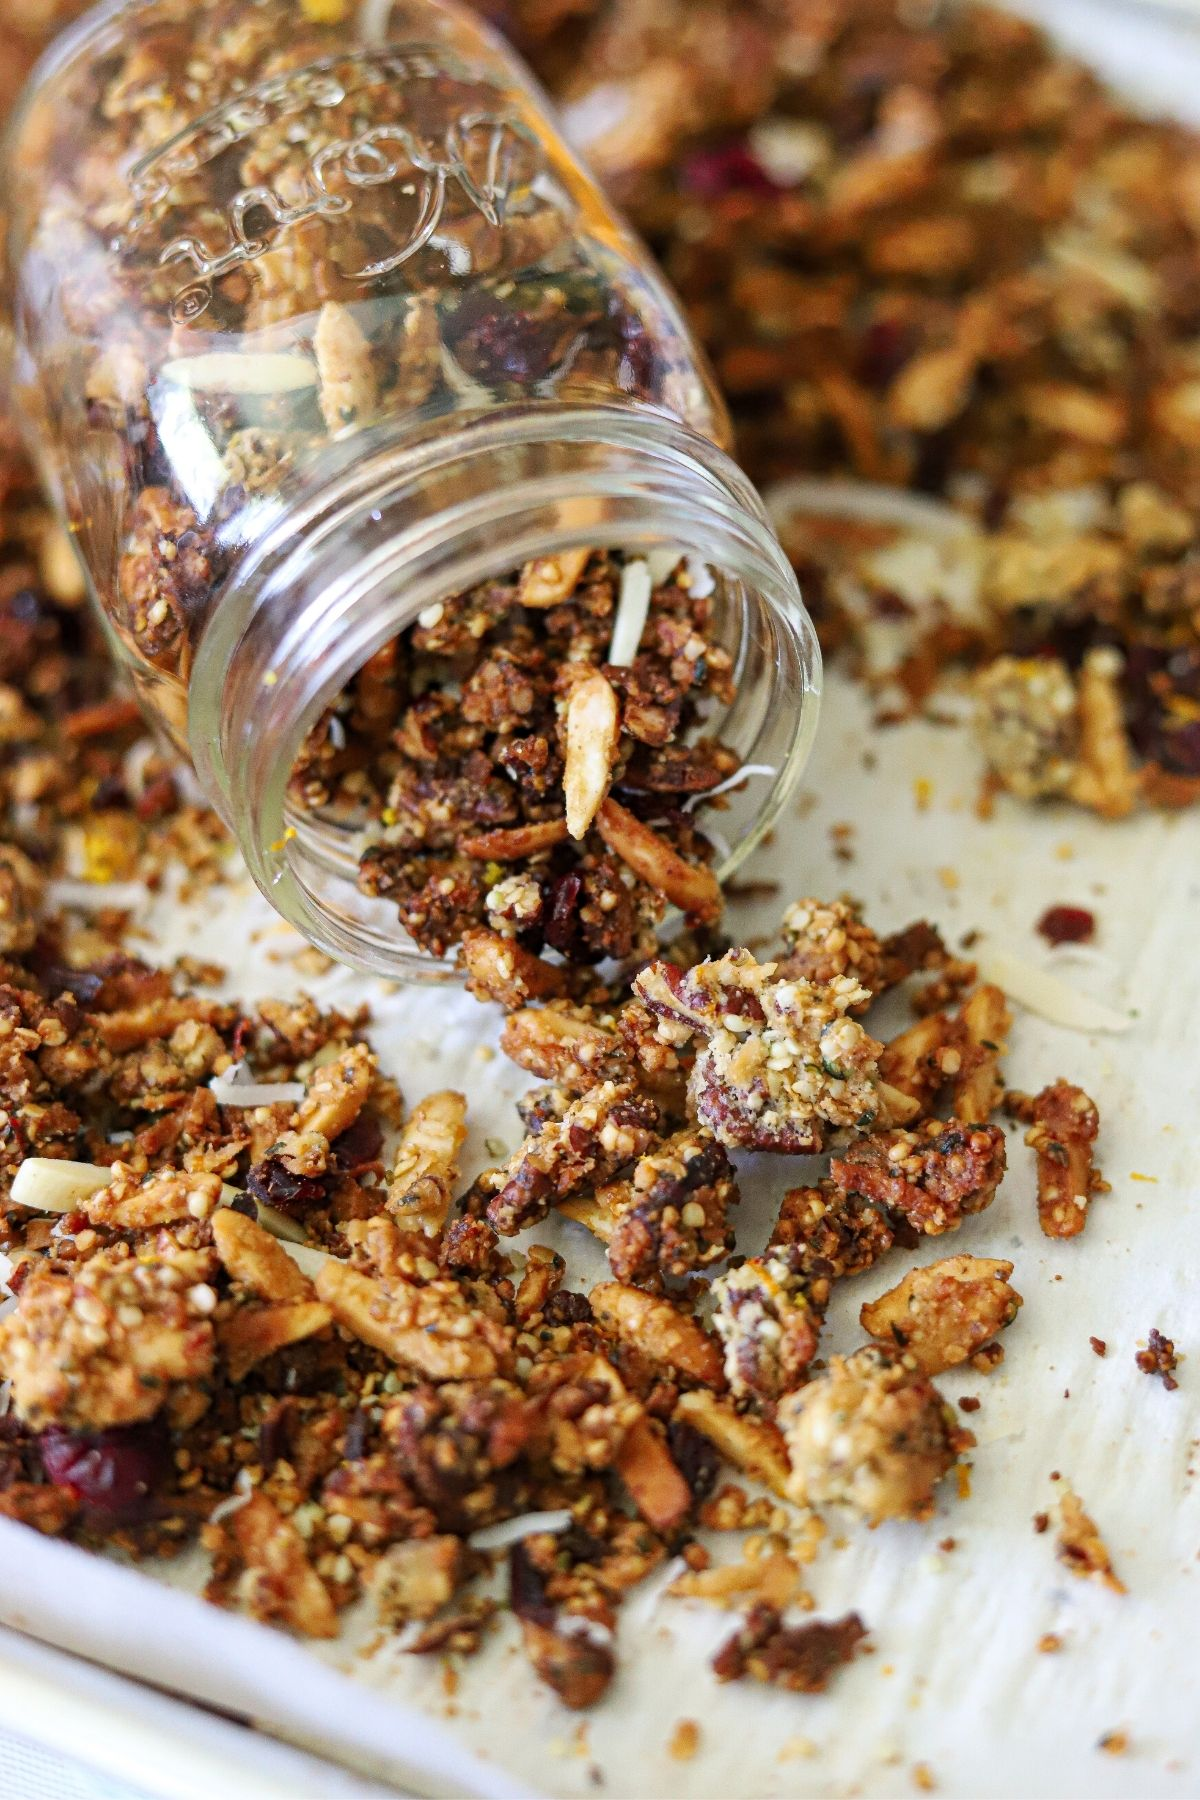 Homemade grain free granola sprinkled with orange zest and dried cranberries. The granola is spilling from a tipped glass jar